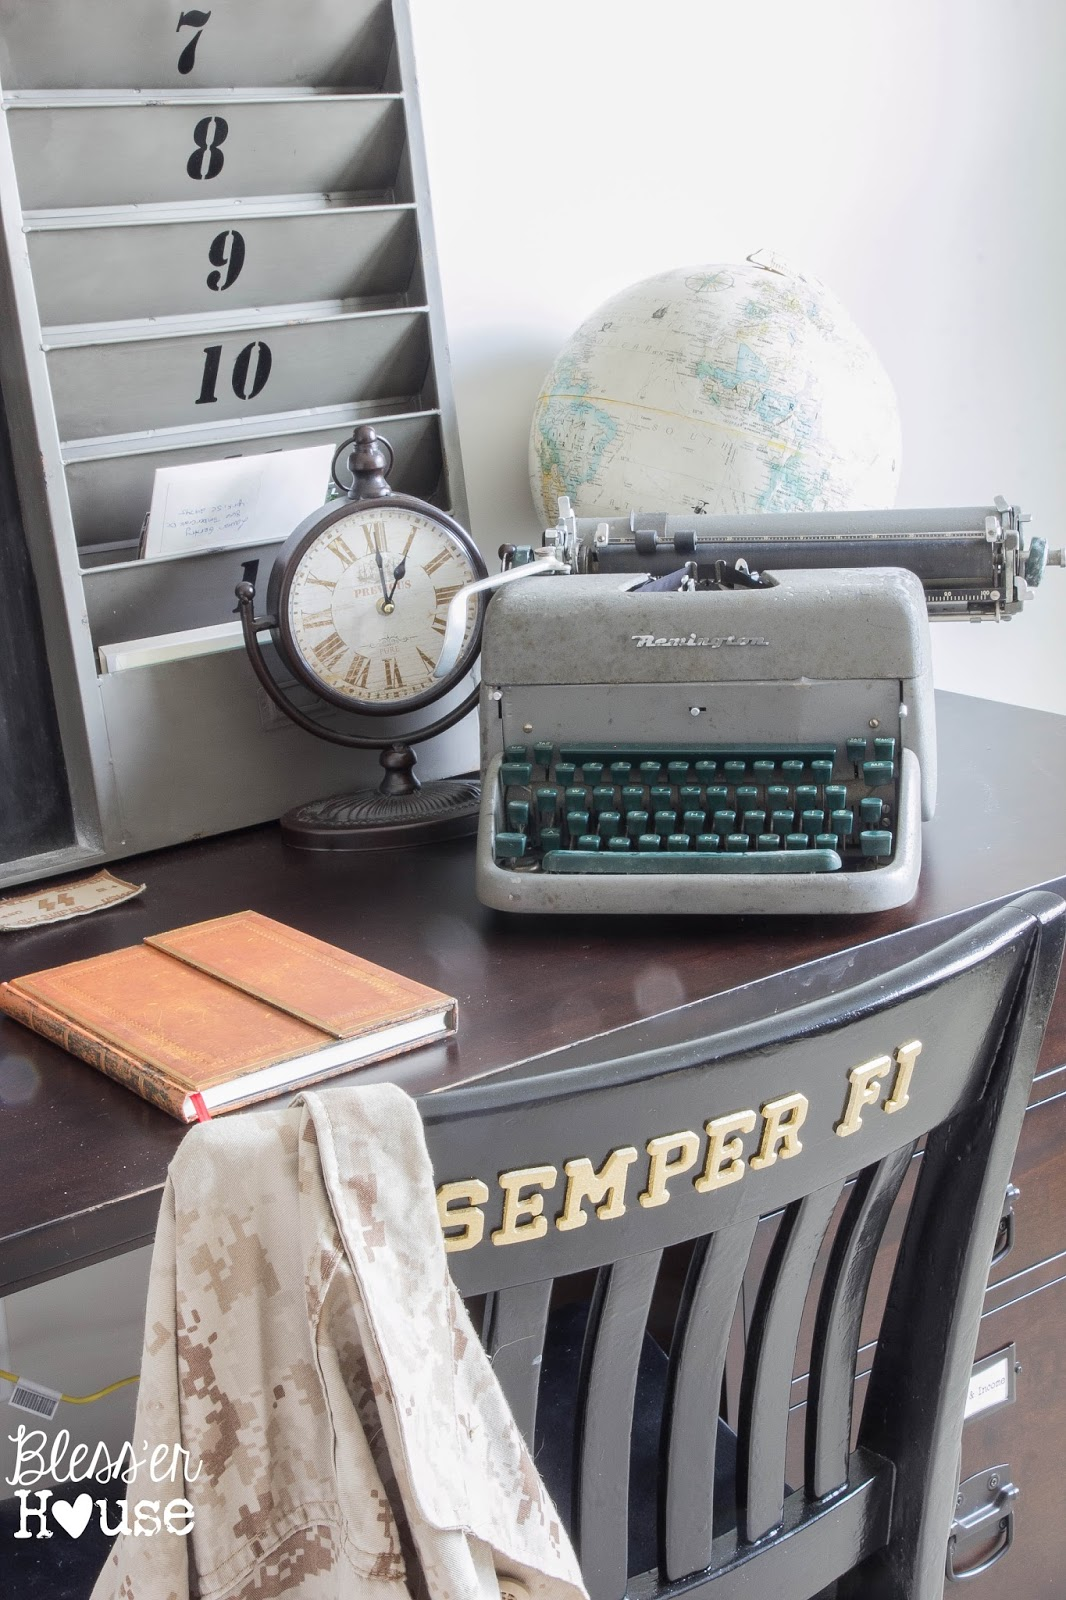 Vintage Inspired Office-Bless'er House-How I Found My Style Sundays- From My Front Porch To Yours